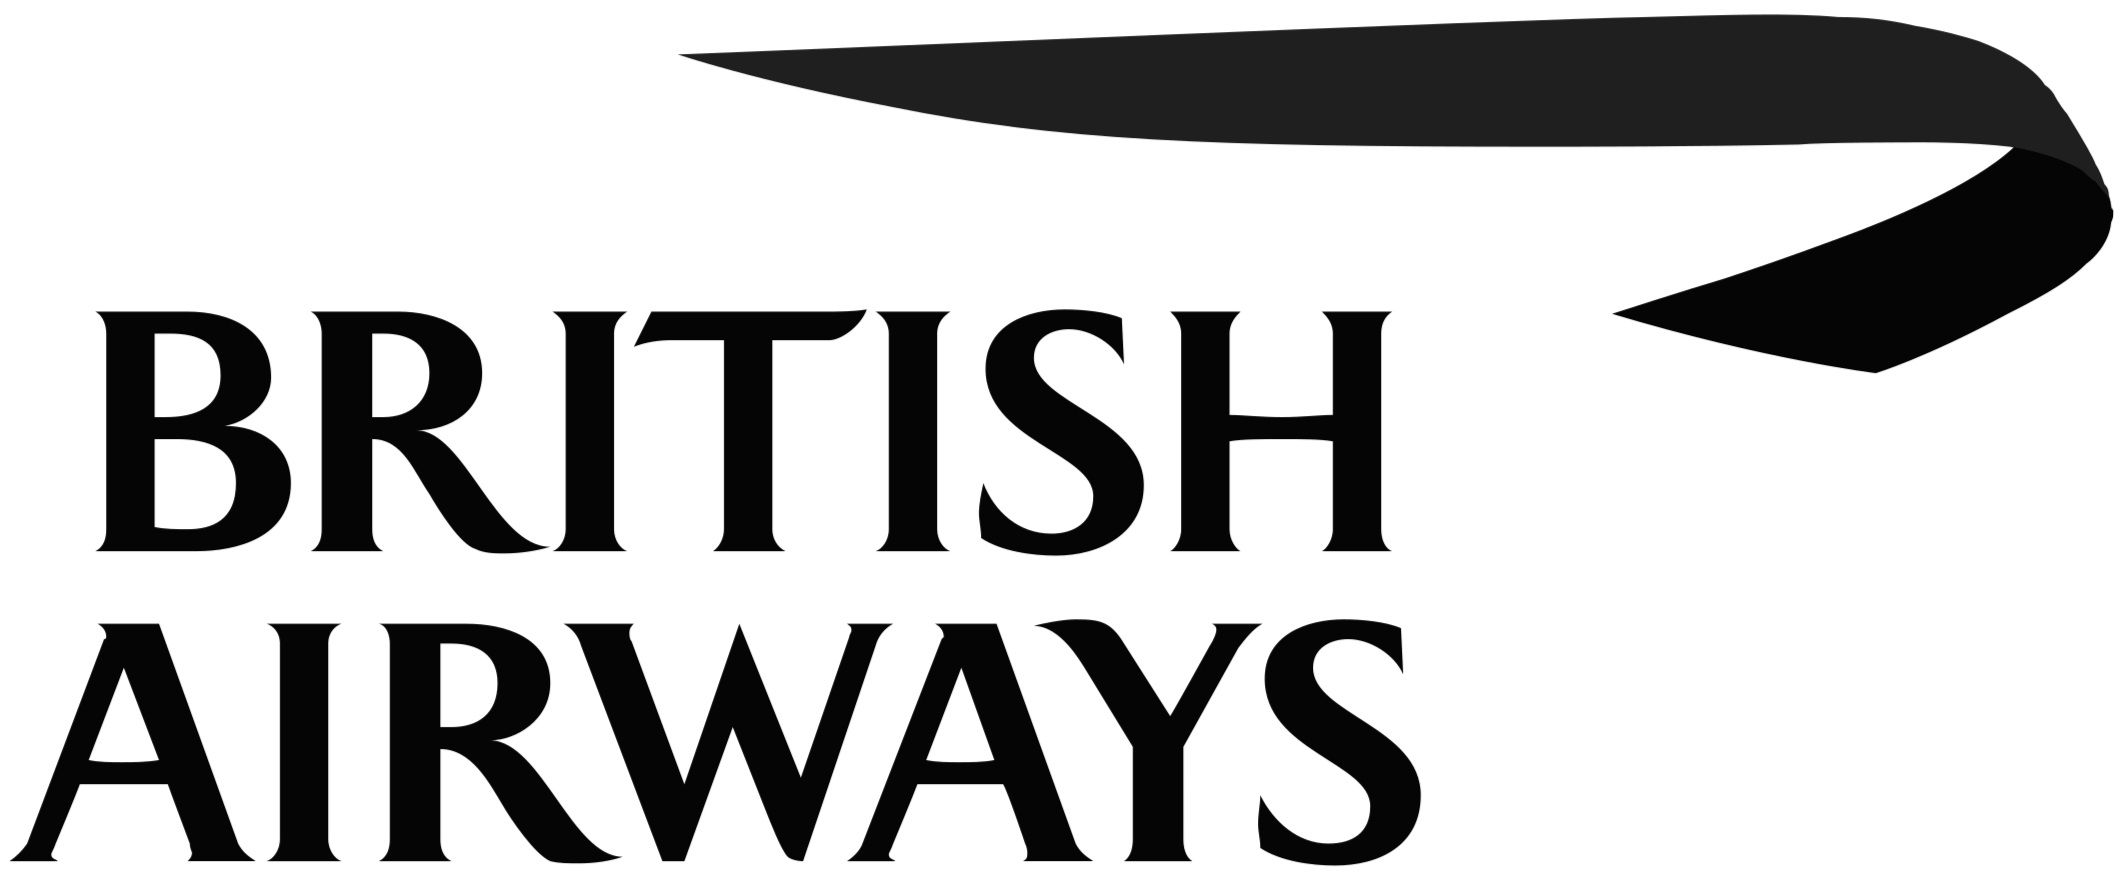 british-airways-01-logo-png-transparent.png